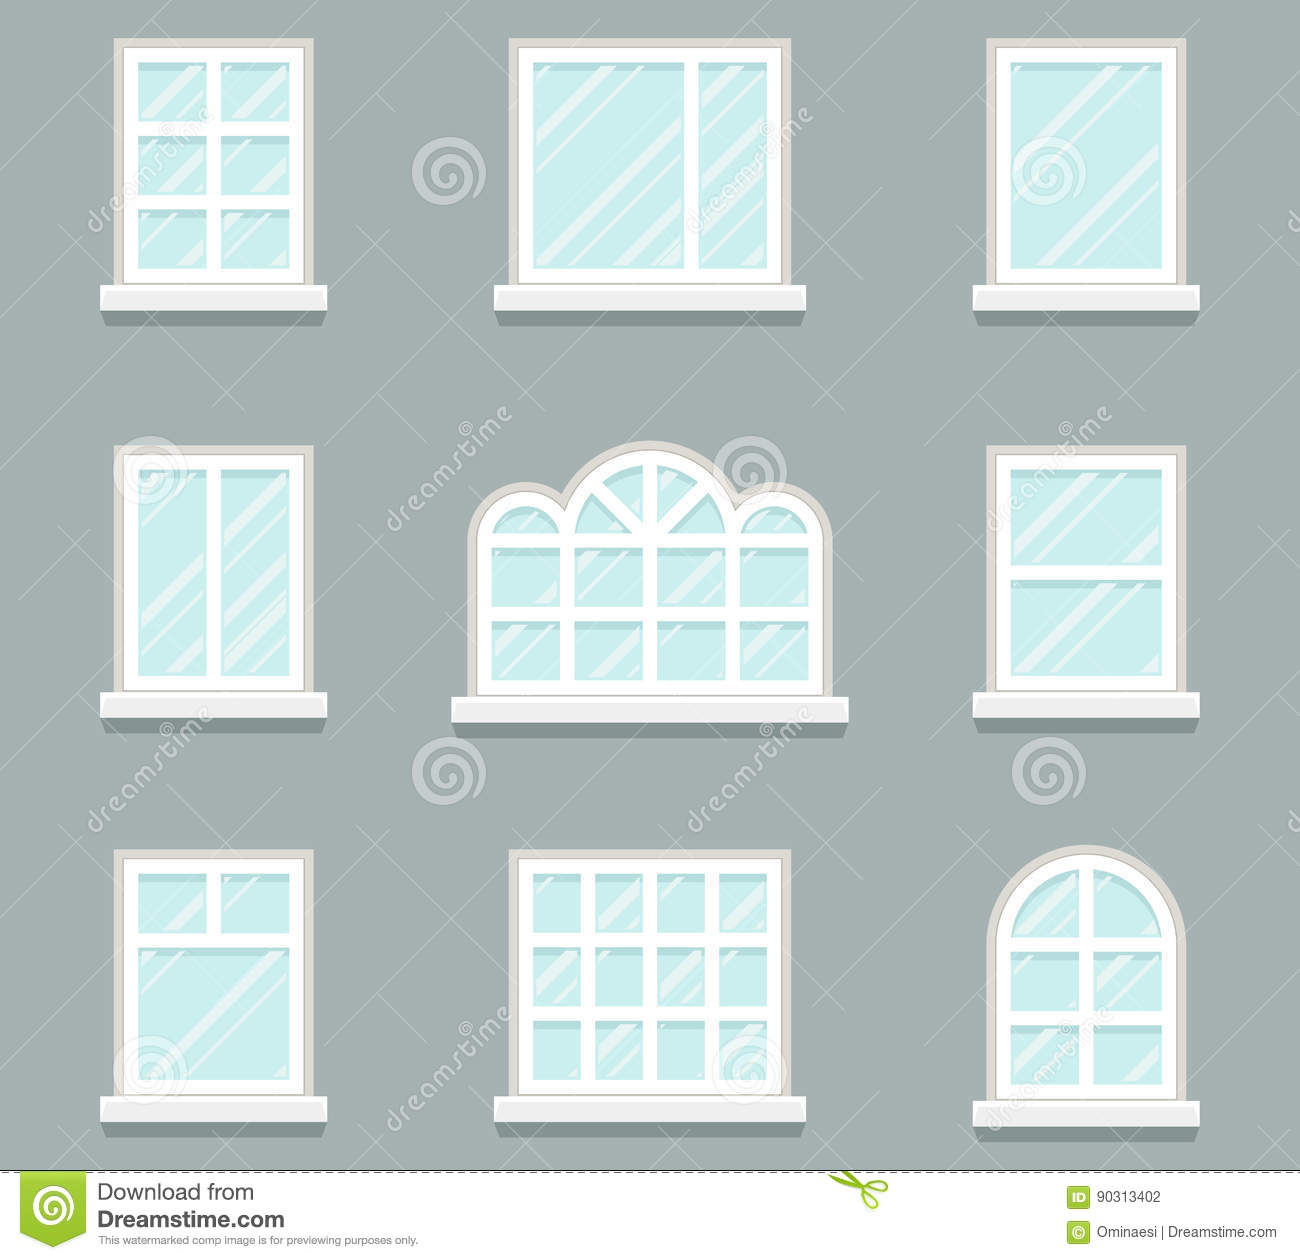 House windows building glass icons set flat design for Window design template